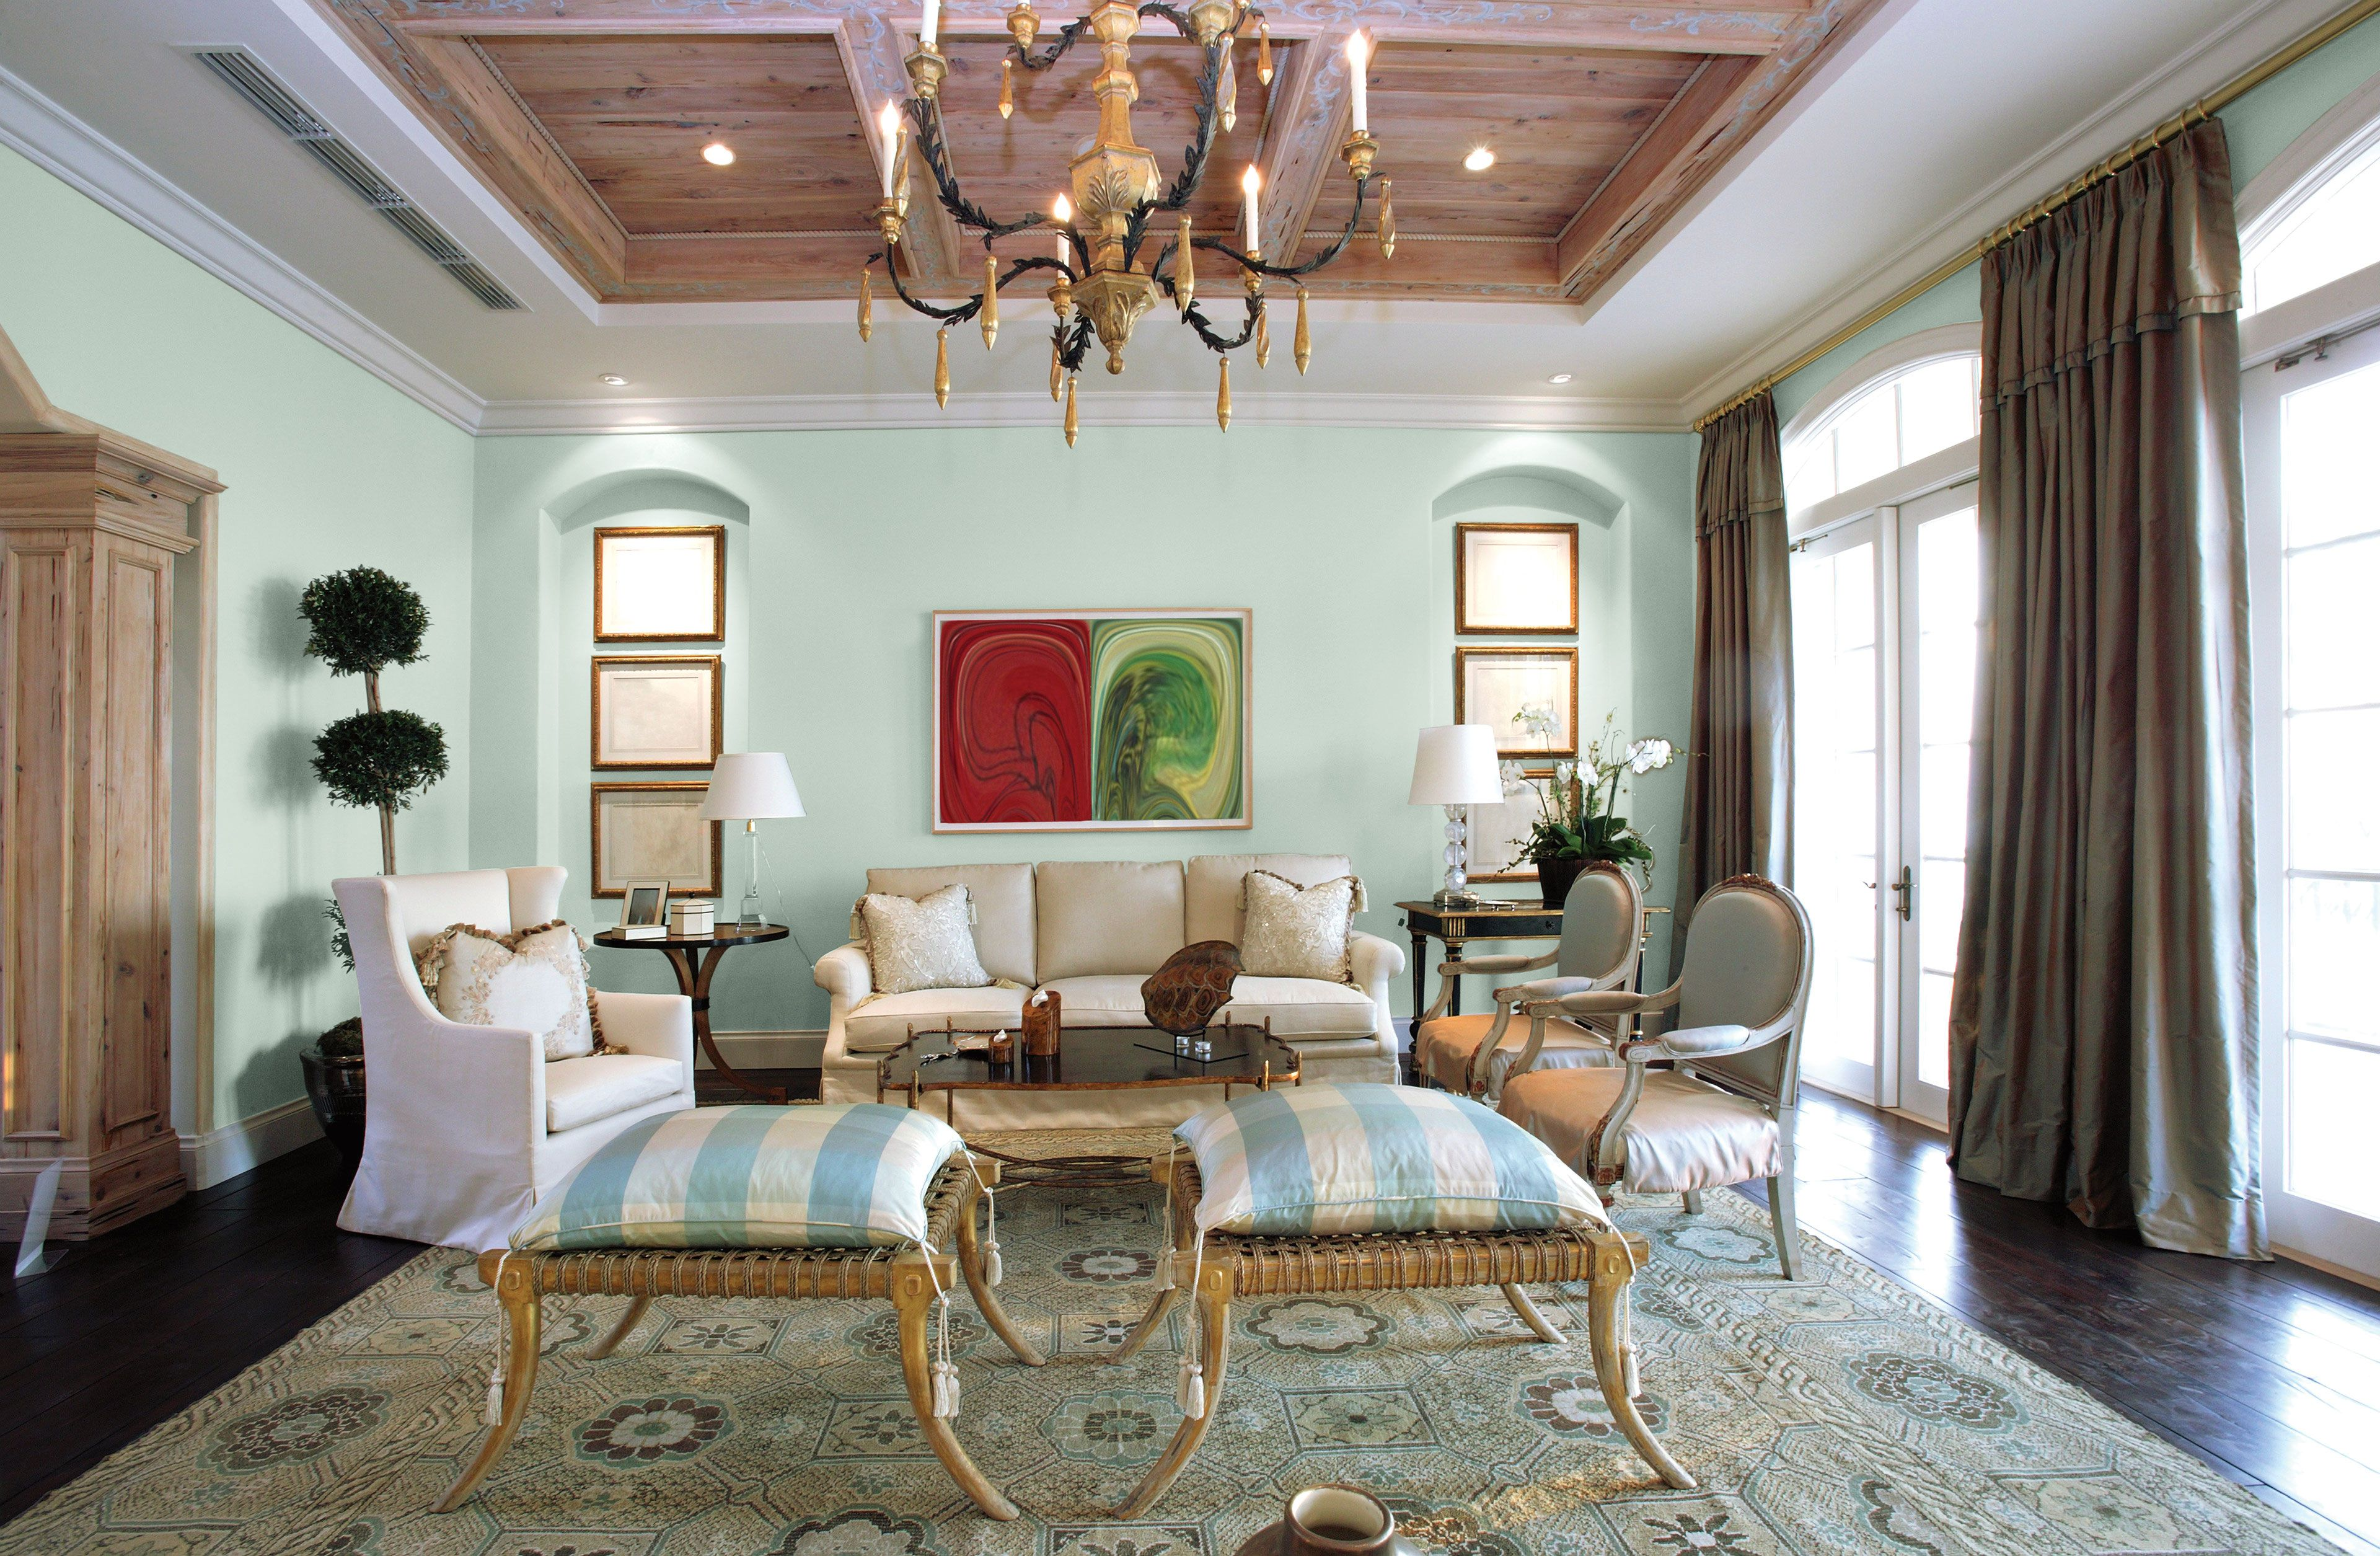 Cool light colors can open a space as well as some - Paint colors to make a room look brighter ...